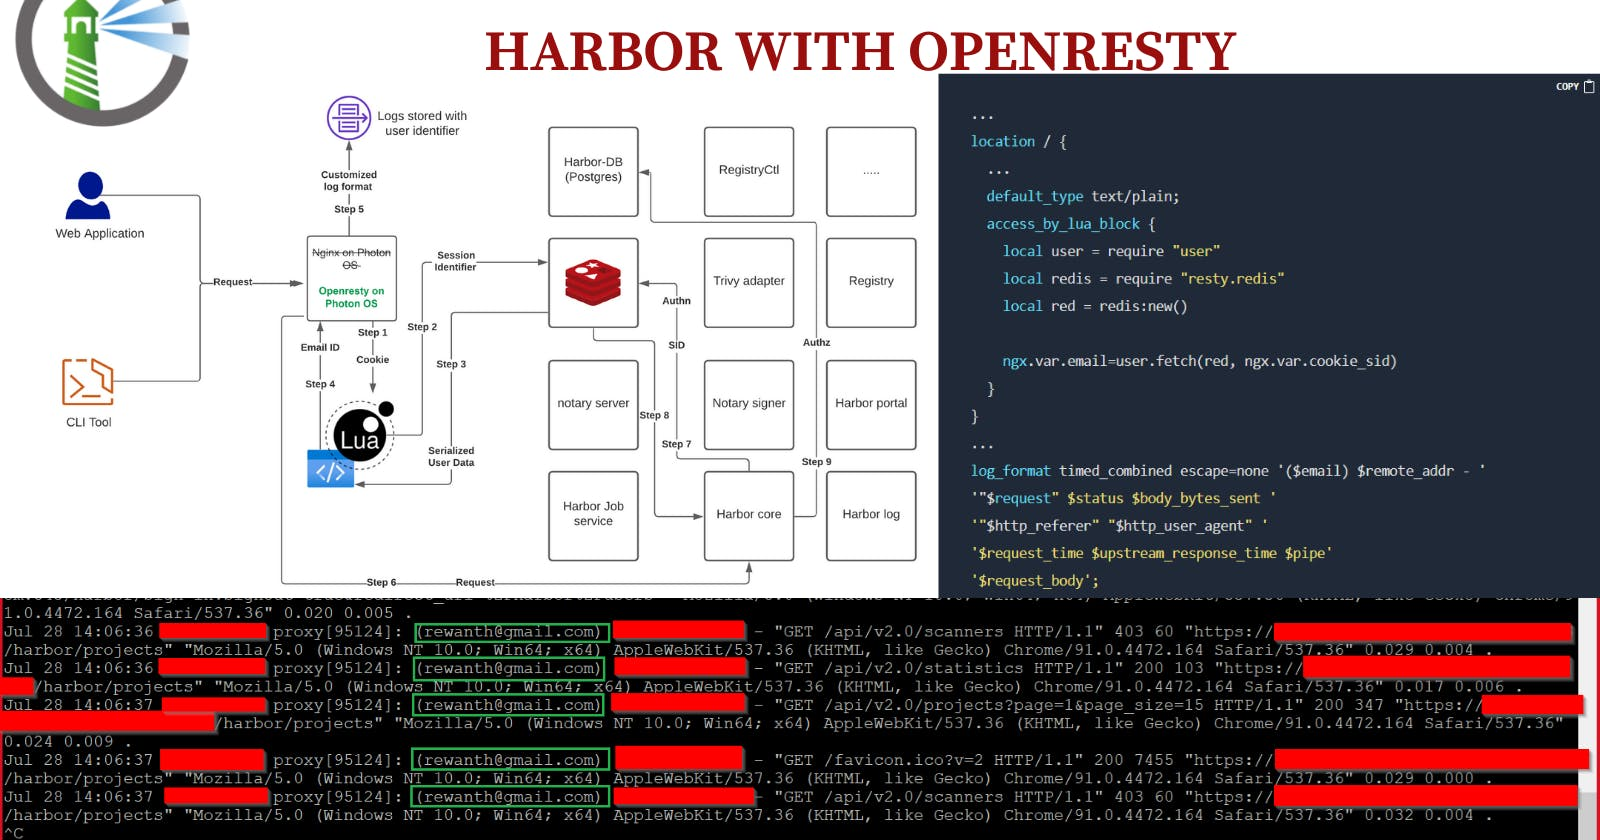 Enhancing the security audit logging of Harbor with OpenResty